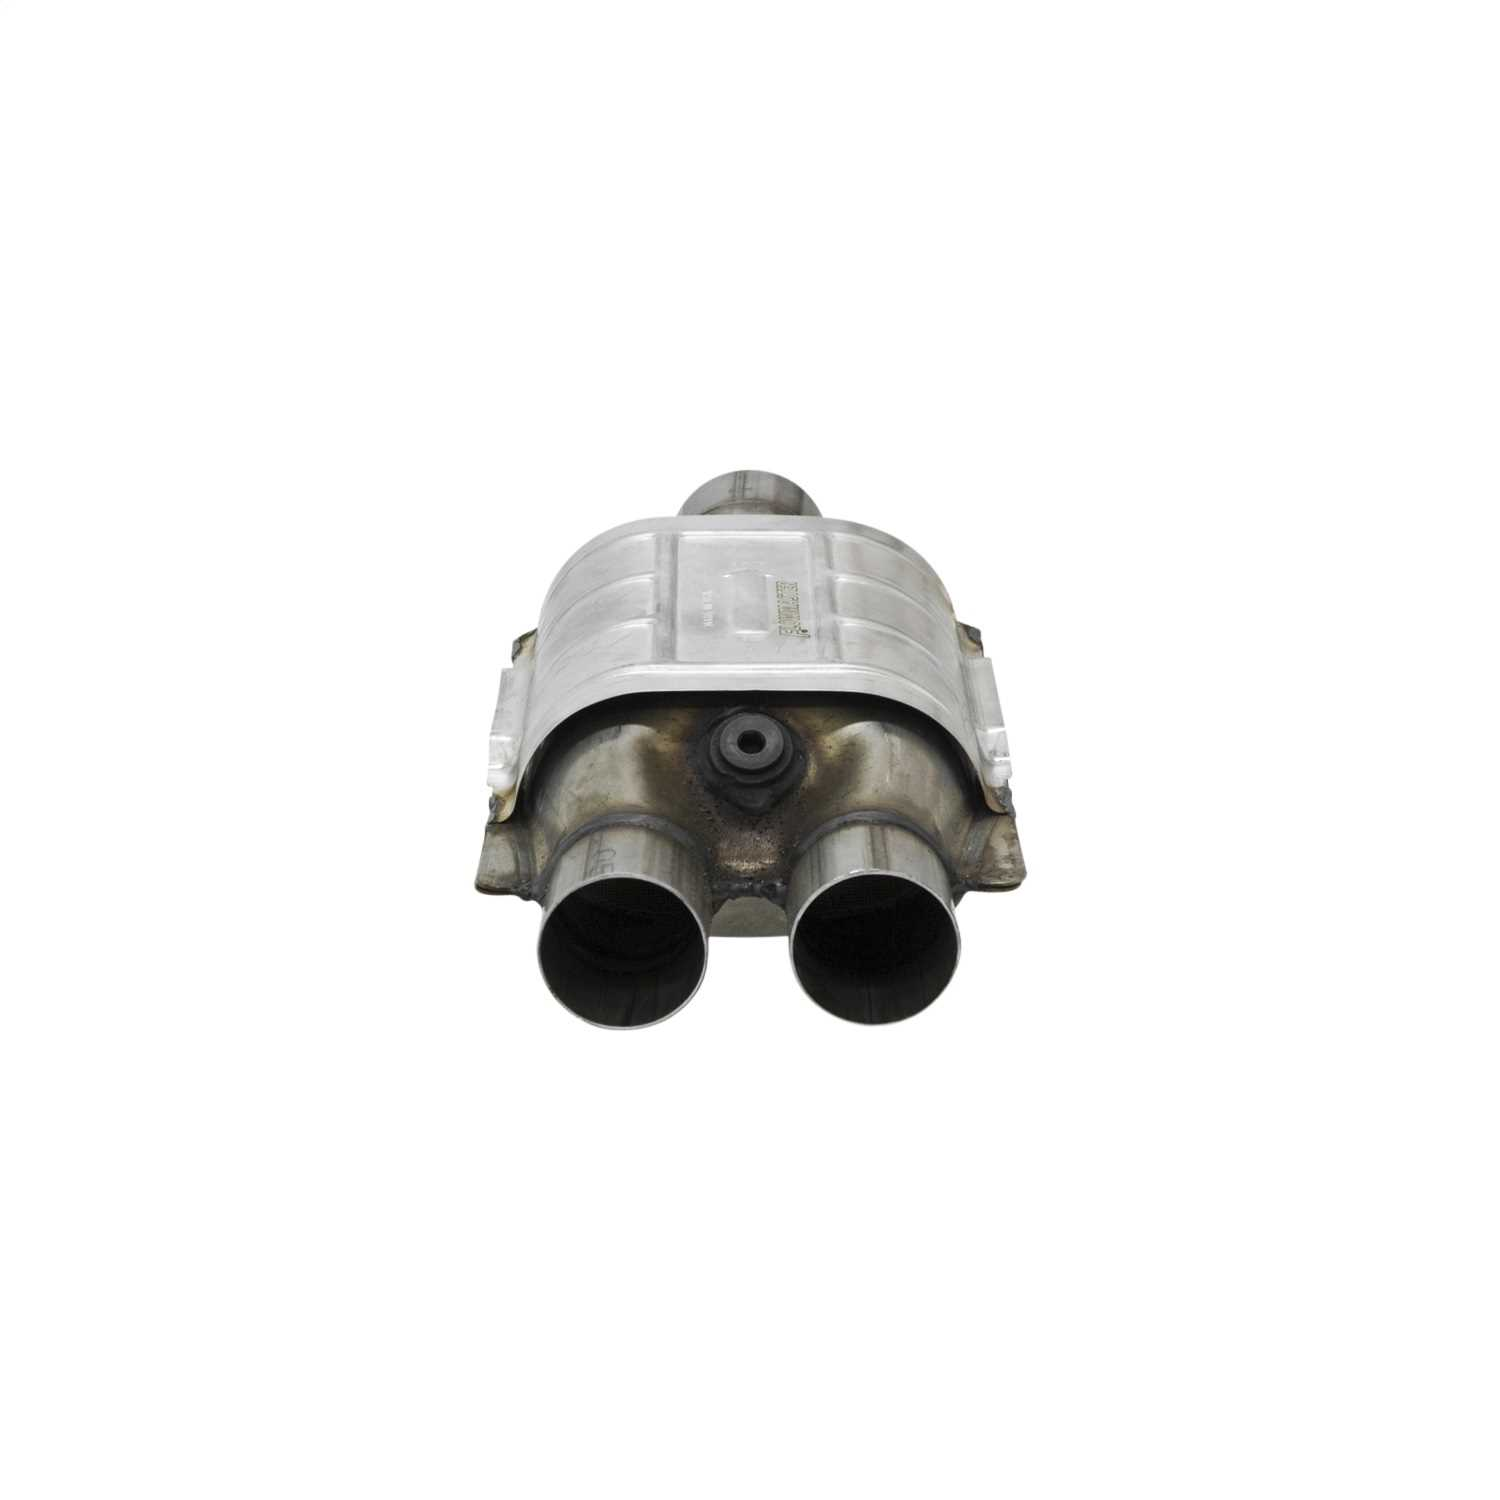 2904220 Flowmaster 49 State Catalytic Converters Universal Catalytic Converter